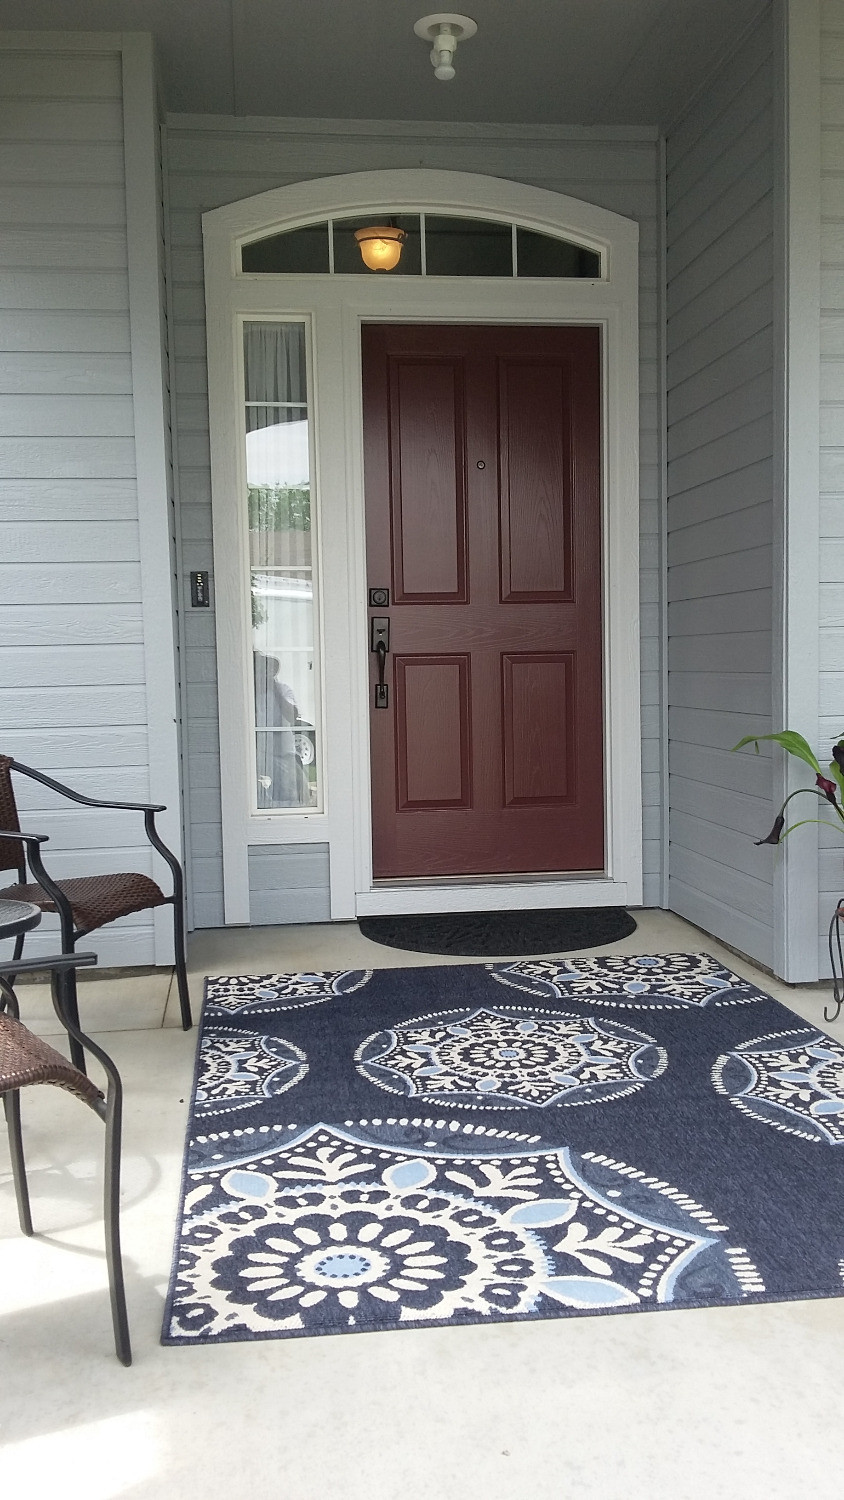 Rich color door and trim.Making a great first impression